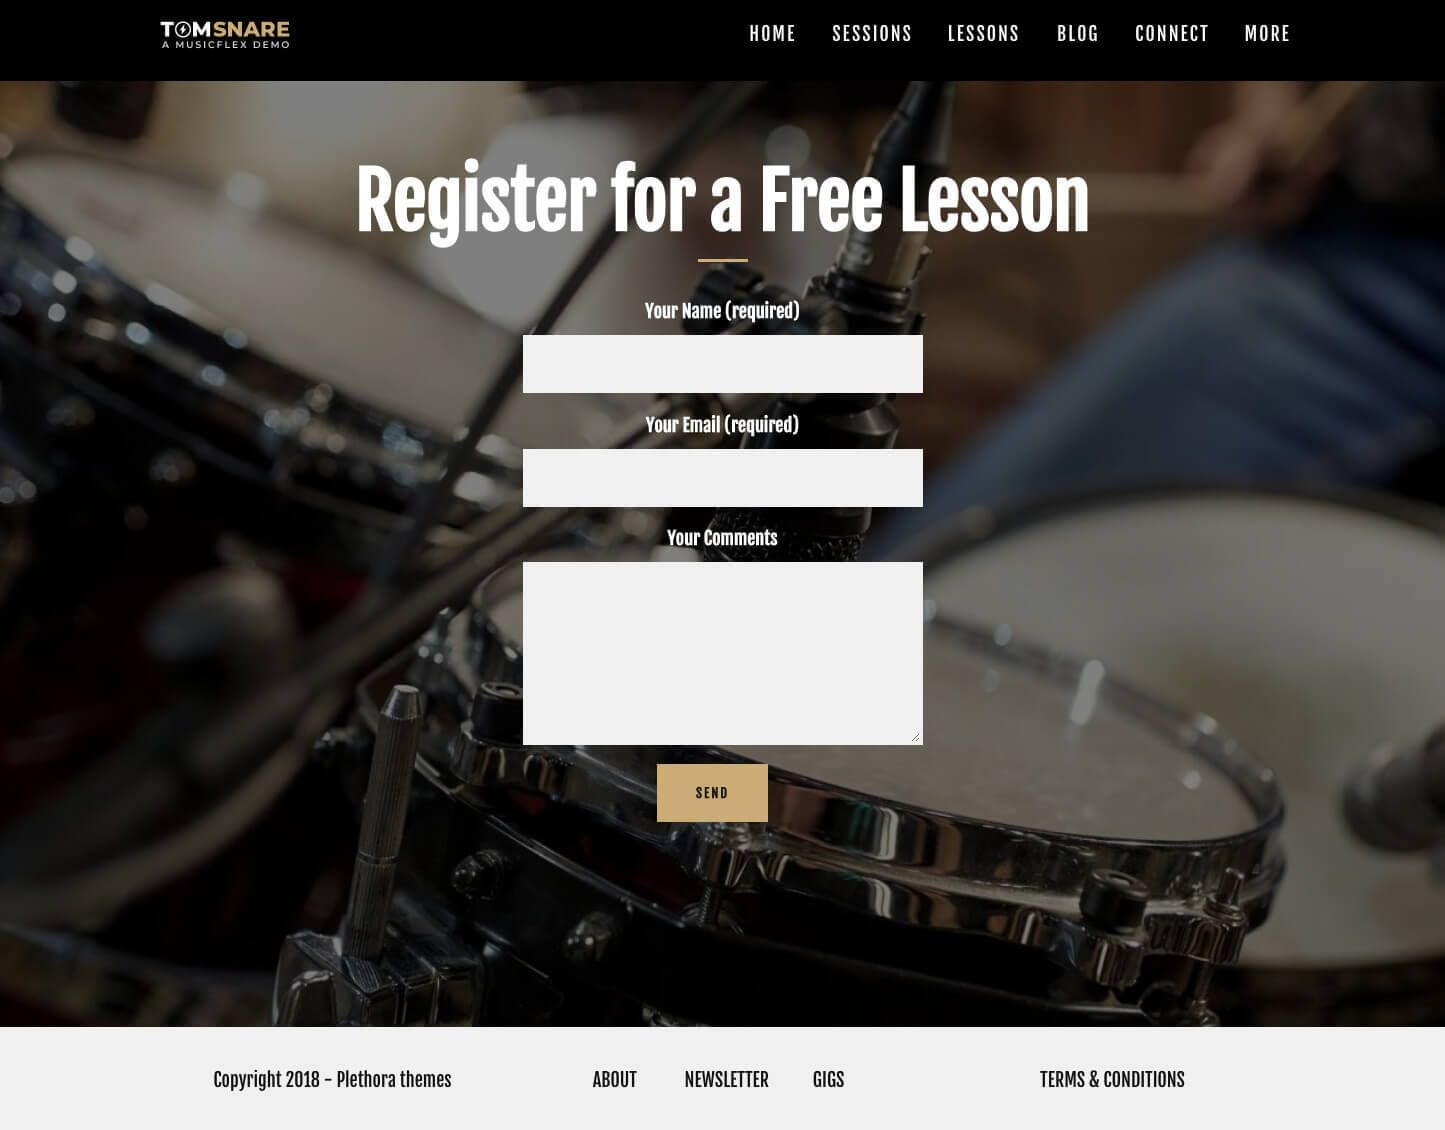 Musicflex Premium Wordpress Theme For The Music Industry This Is Drummer Artist One Of The Available Demos Current Page Lesson Drummer Music Industry Demo